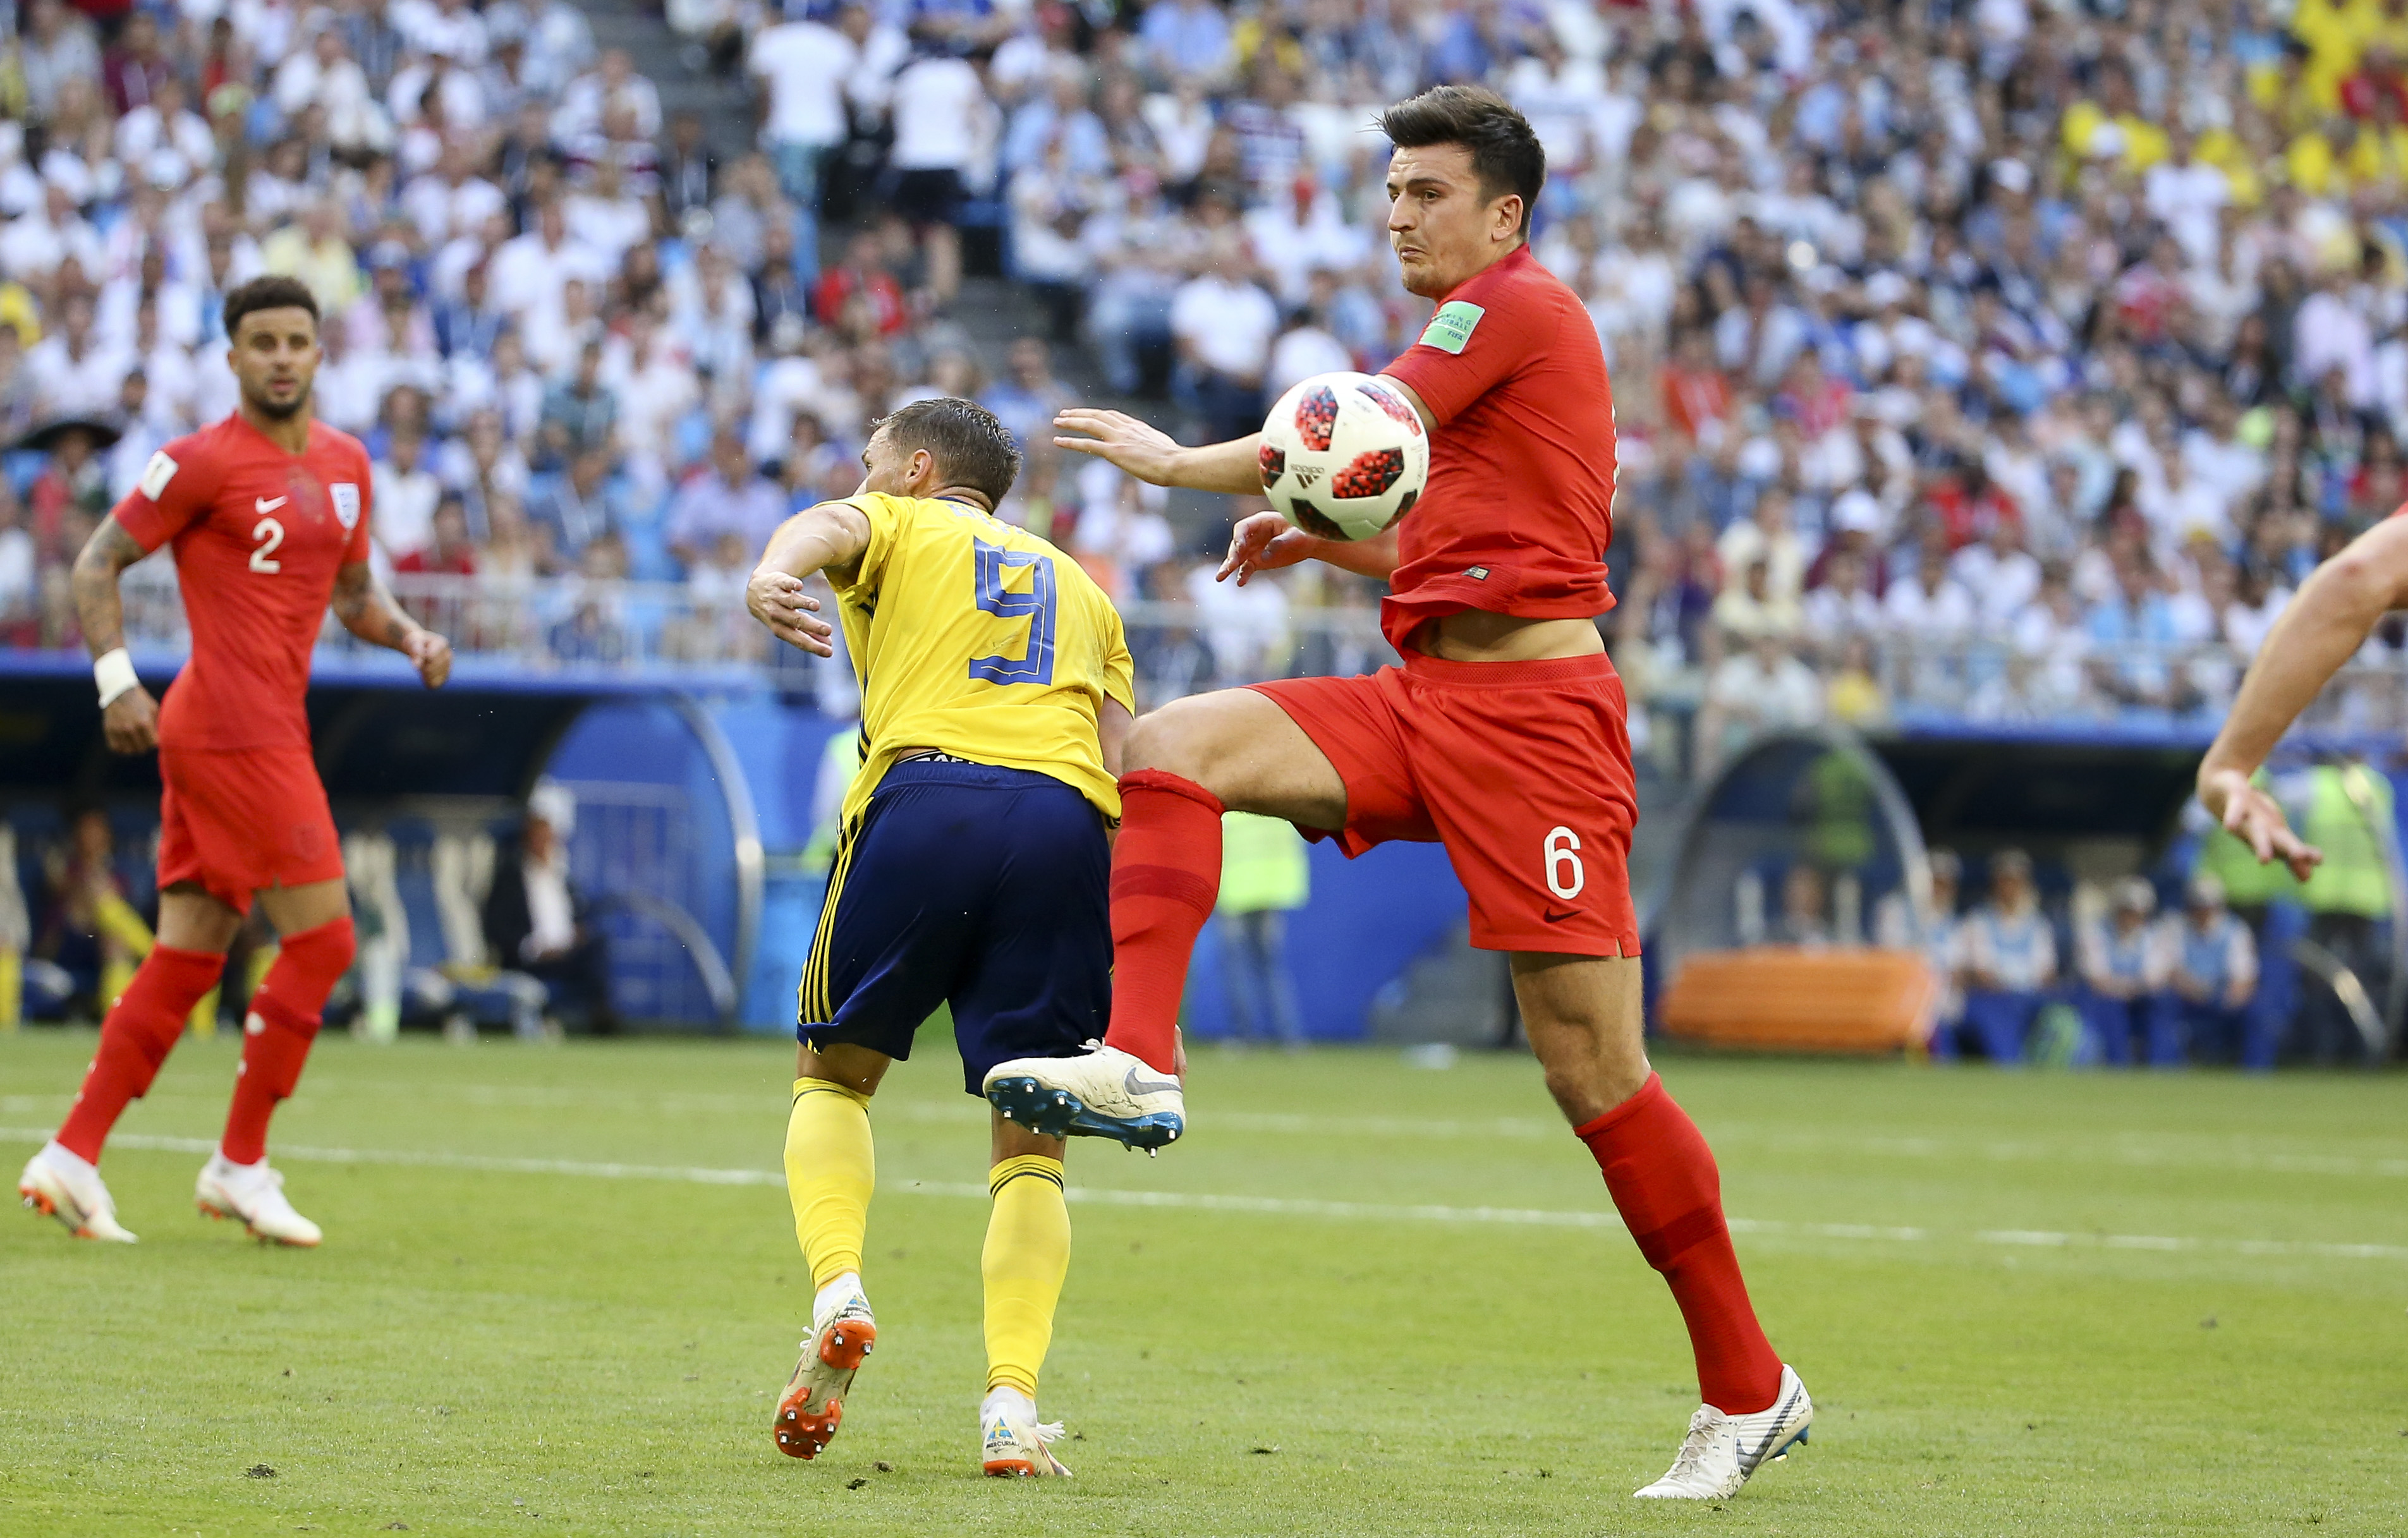 Harry Maguire of England during the 2018 FIFA World Cup Russia Quarter Final match between Sweden and England at Samara Arena on July 7, 2018 in Samara, Russia. (Photo by Jean Catuffe/Getty Images)